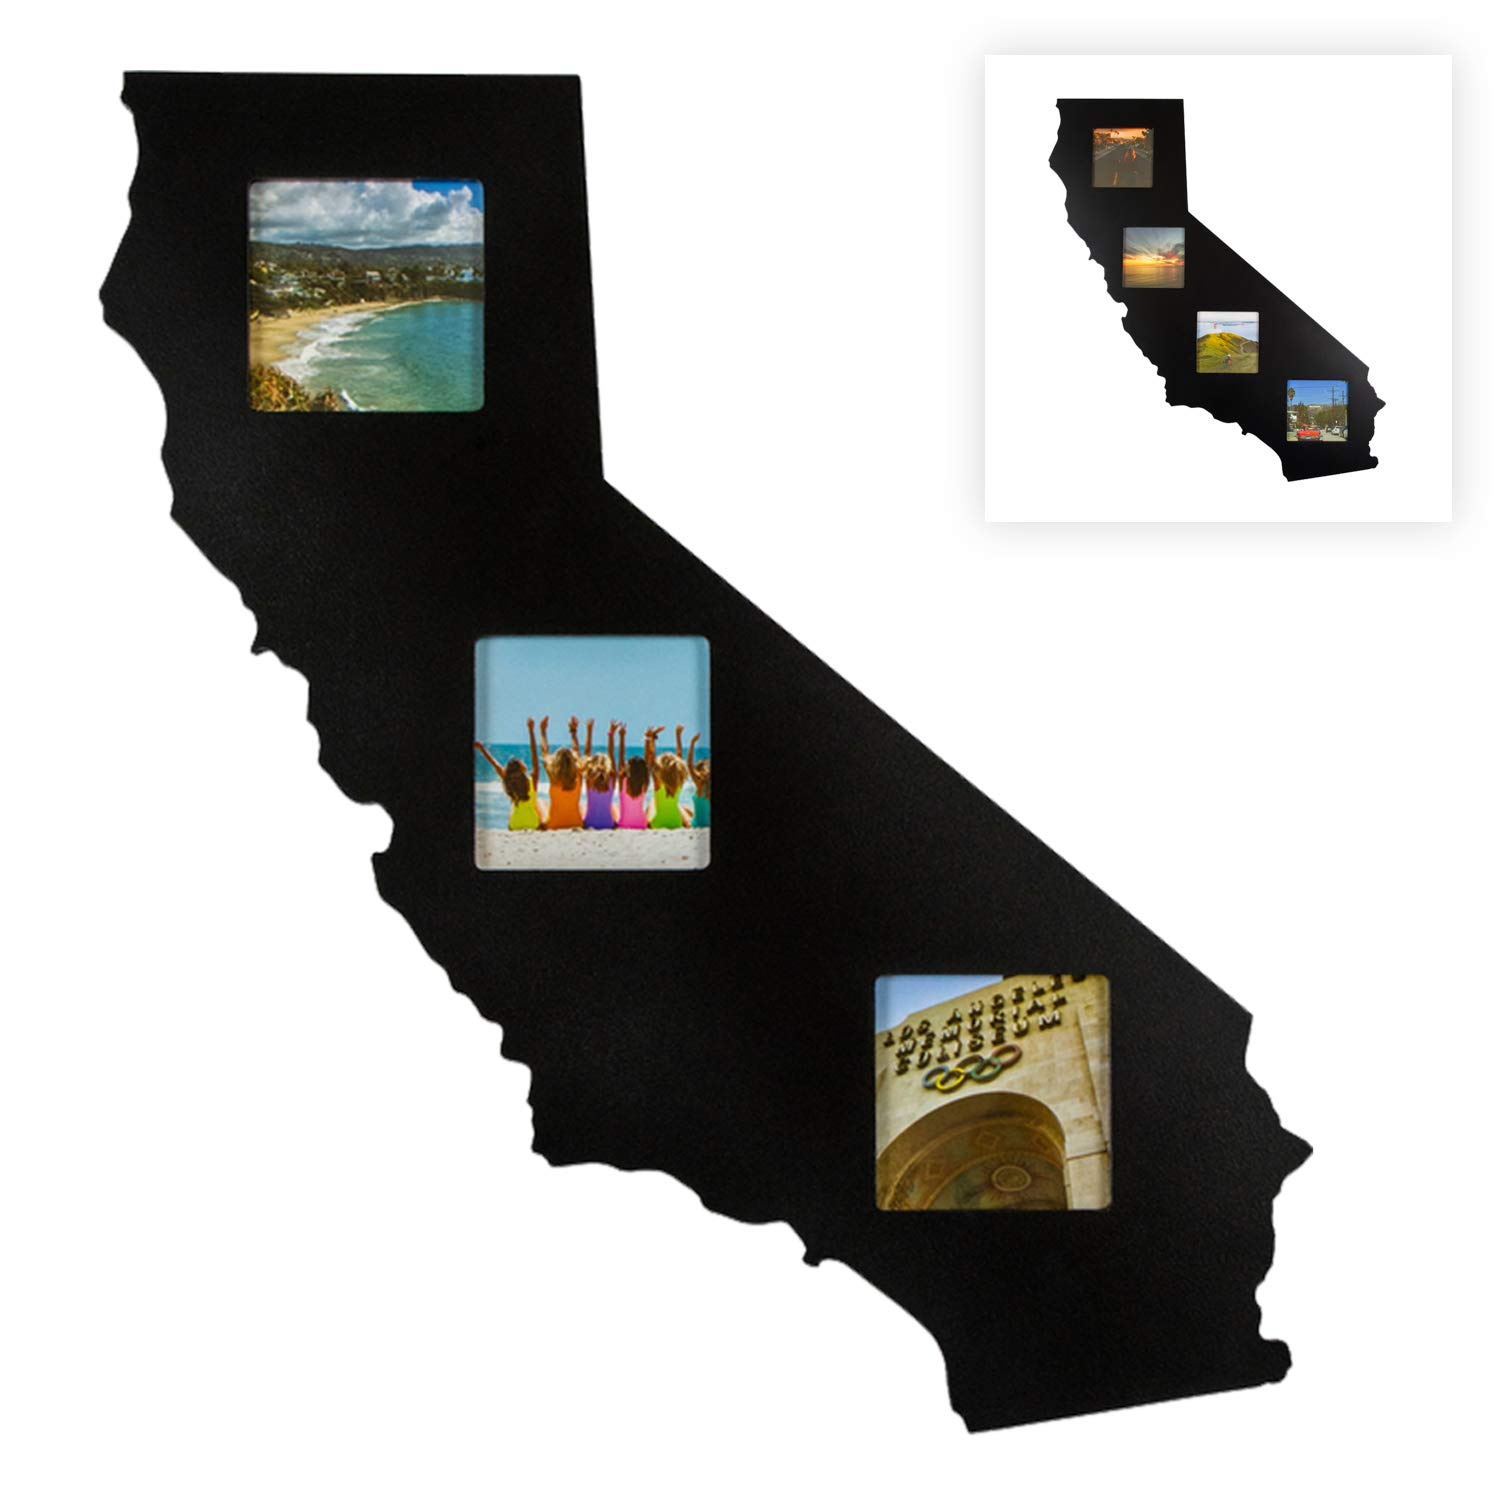 State Your Frame California Home Goods Gifts State Shaped Recycled Matte Black Wood Picture Collage Photo Frame - The Perfect Golden State Modern Wall Decor Gift for The Home - 3 Piece 3x3